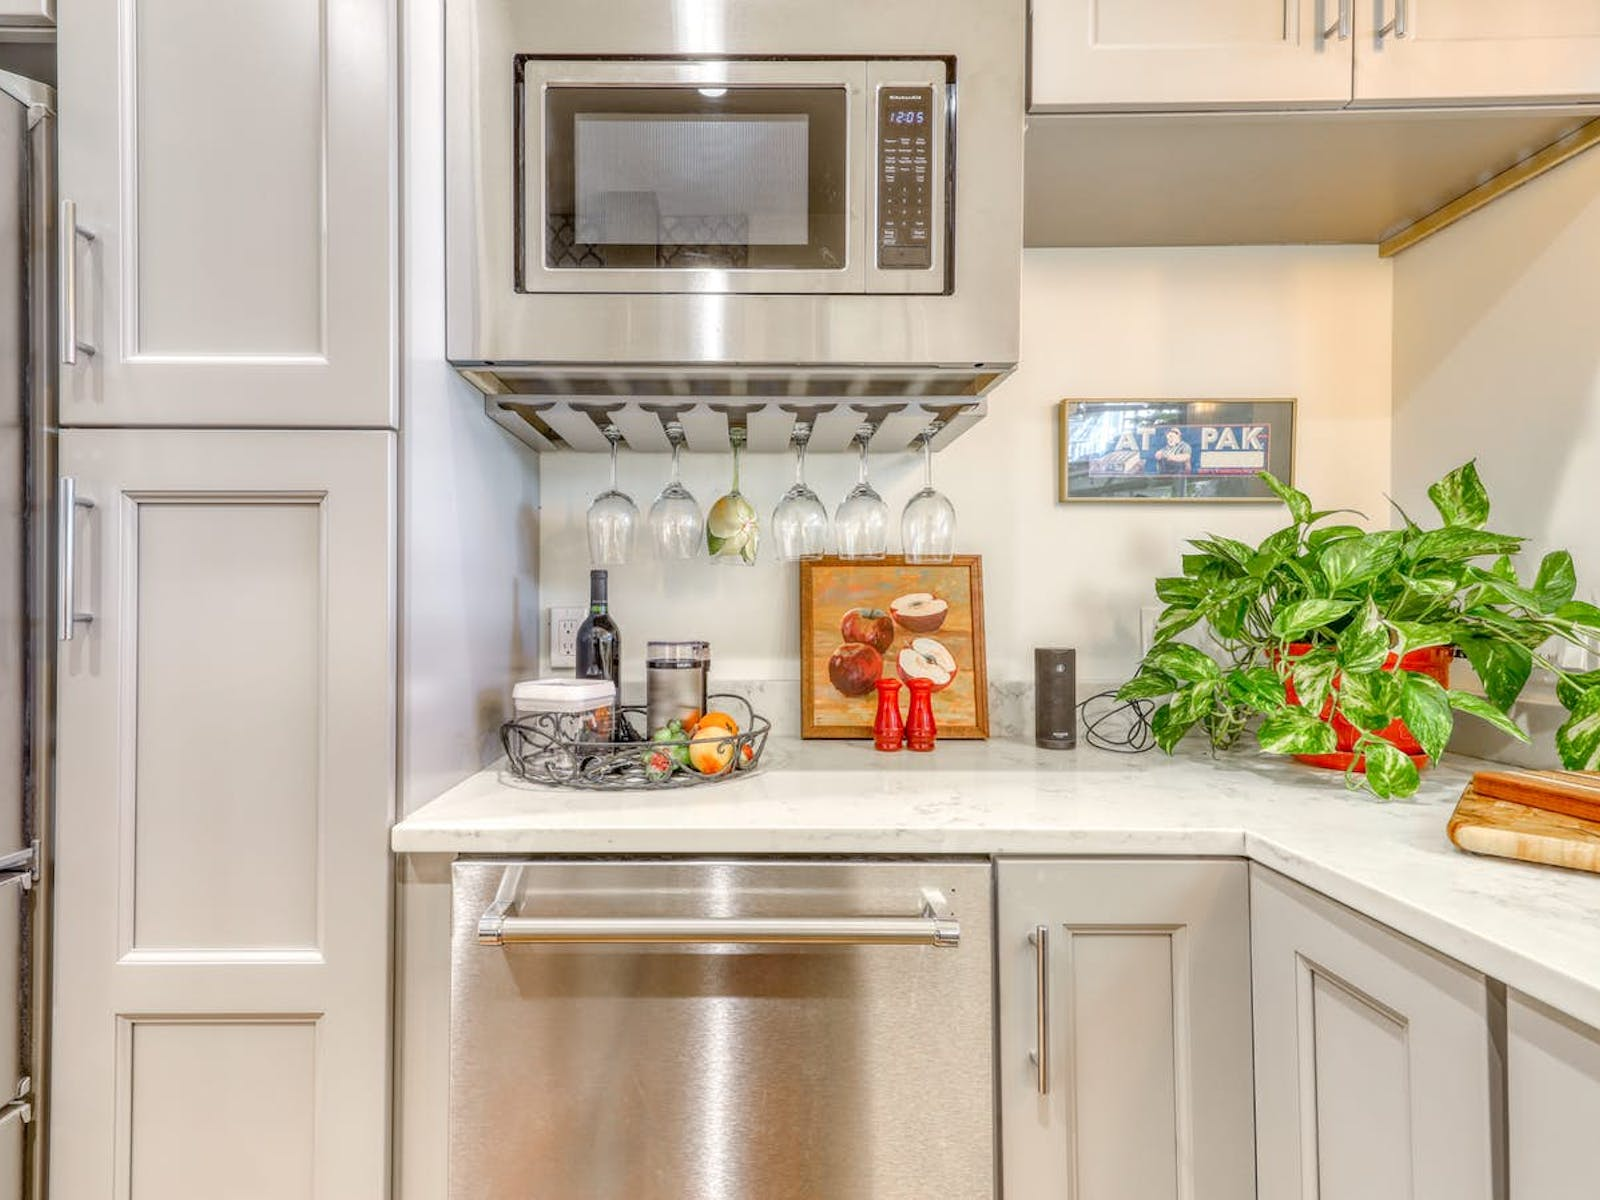 kitchen of vacation rental located in Portland, ME